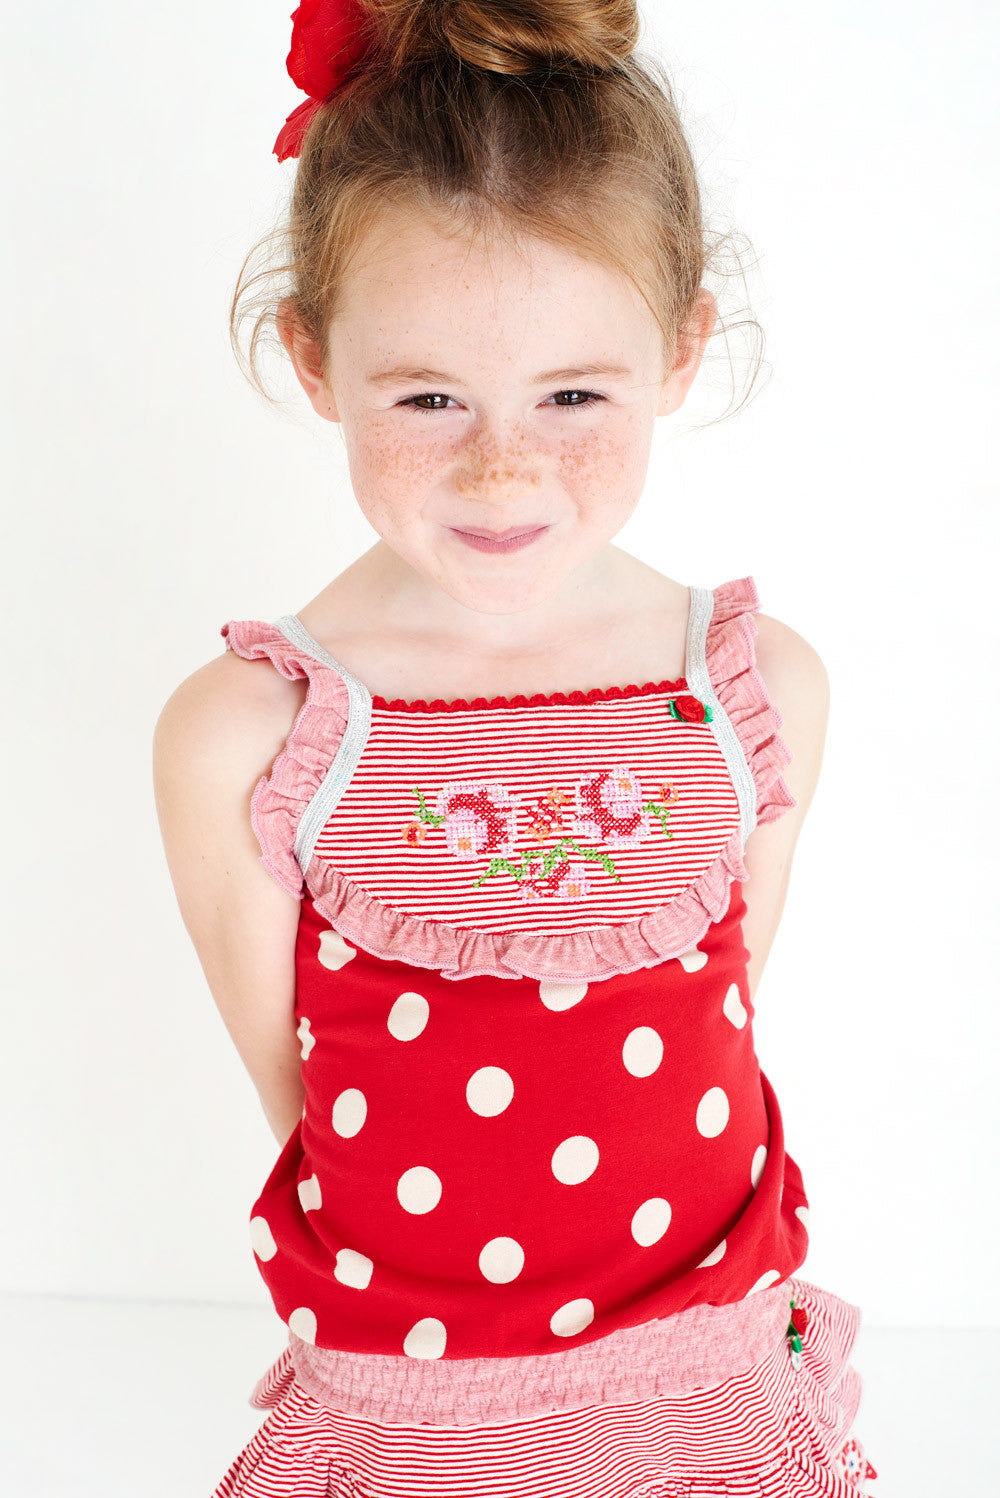 SS17 Mim-Pi Girls Spanish Rose Red & White Spots Top 451